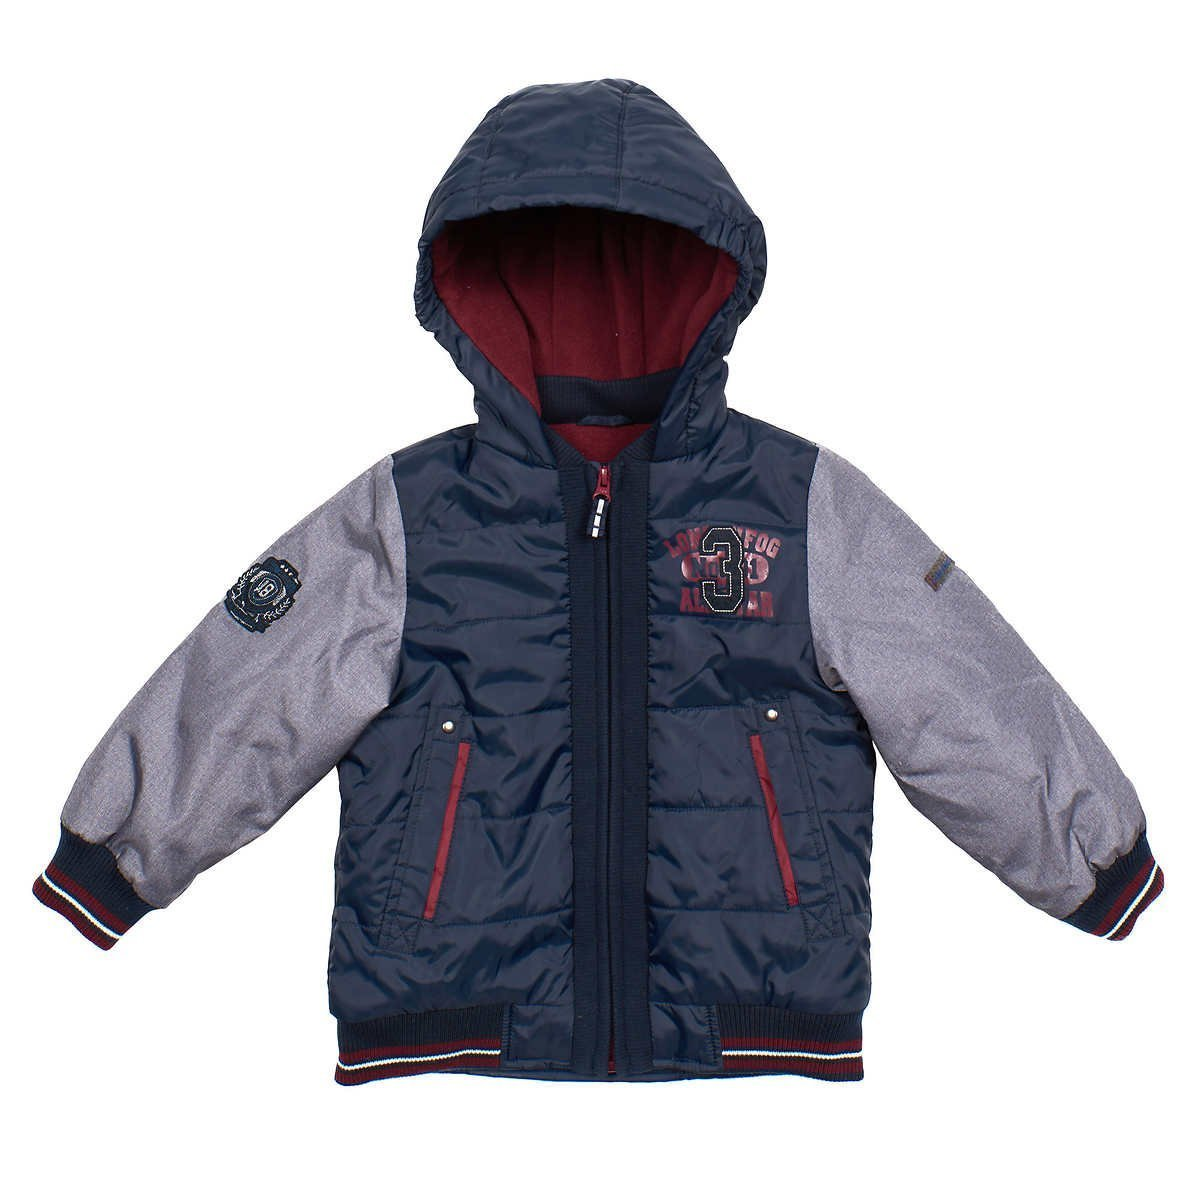 London Fog Toddler Boys Blue Fleece Lined Outerwear Jacket 559209BL-102114-H